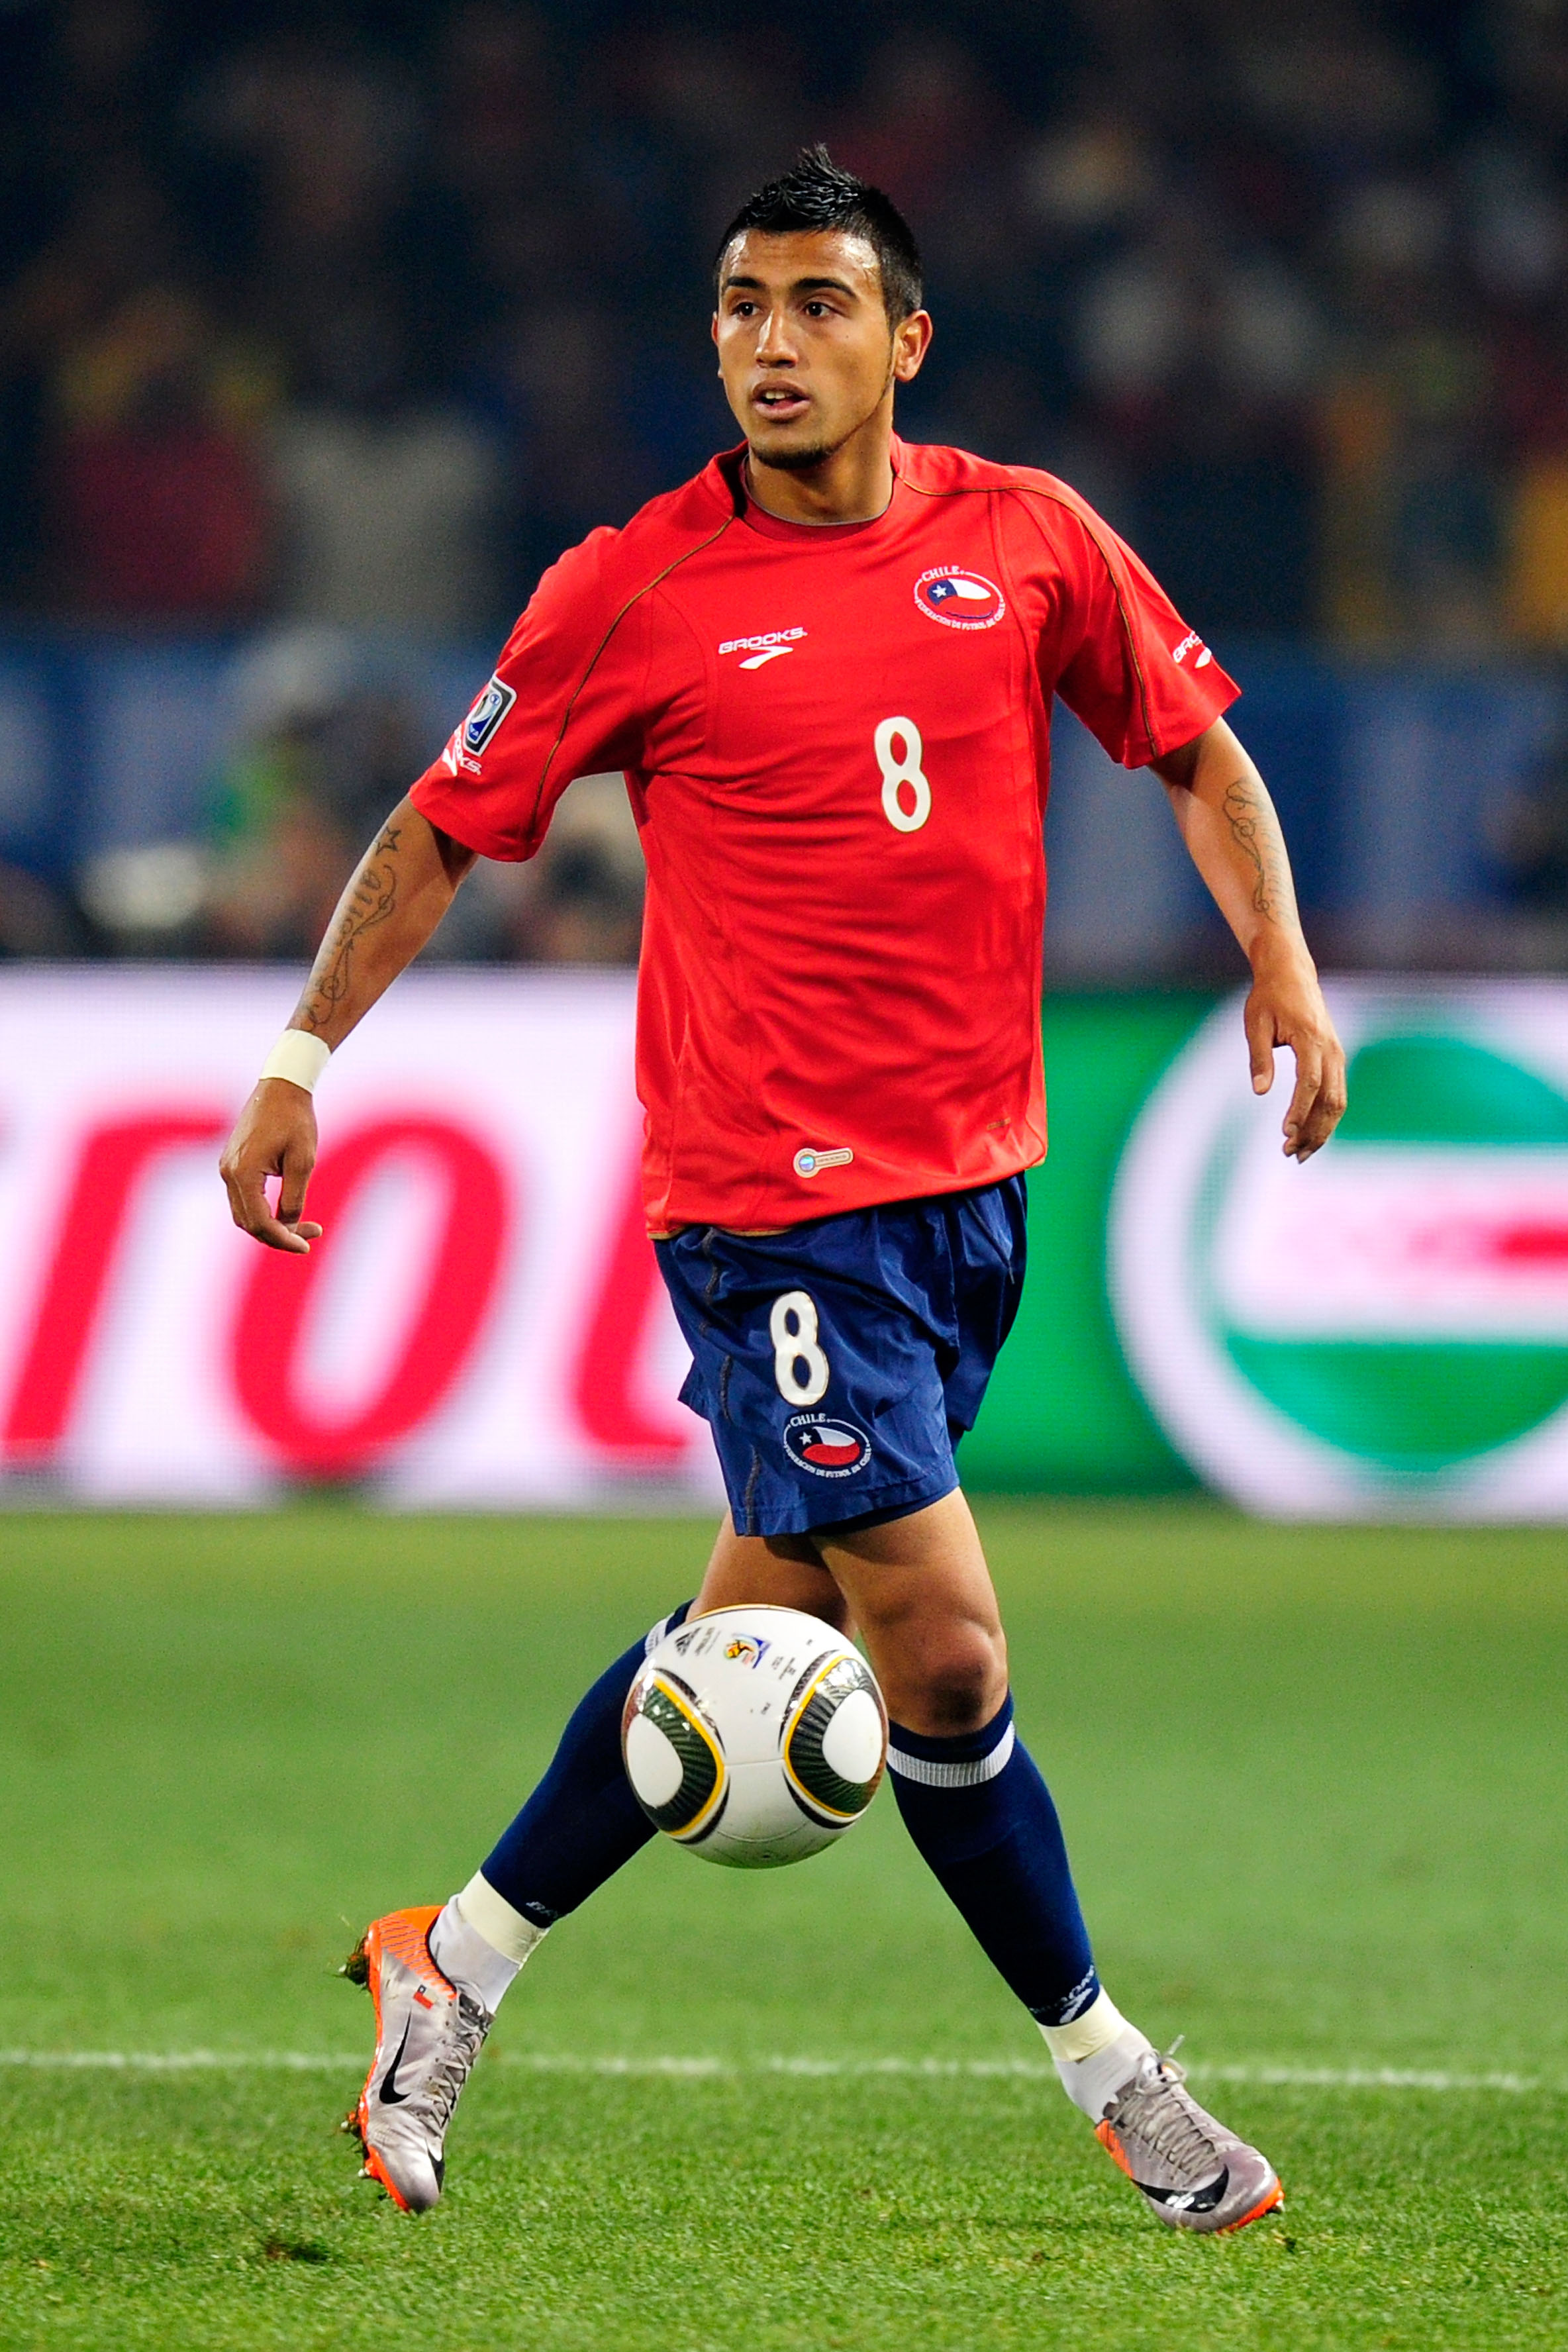 PRETORIA, SOUTH AFRICA - JUNE 25: Arturo Vidal of Chile in action during the 2010 FIFA World Cup South Africa Group H match between Chile and Spain at Loftus Versfeld Stadium on June 25, 2010 in Tshwane/Pretoria, South Africa.  (Photo by Stuart Franklin/G